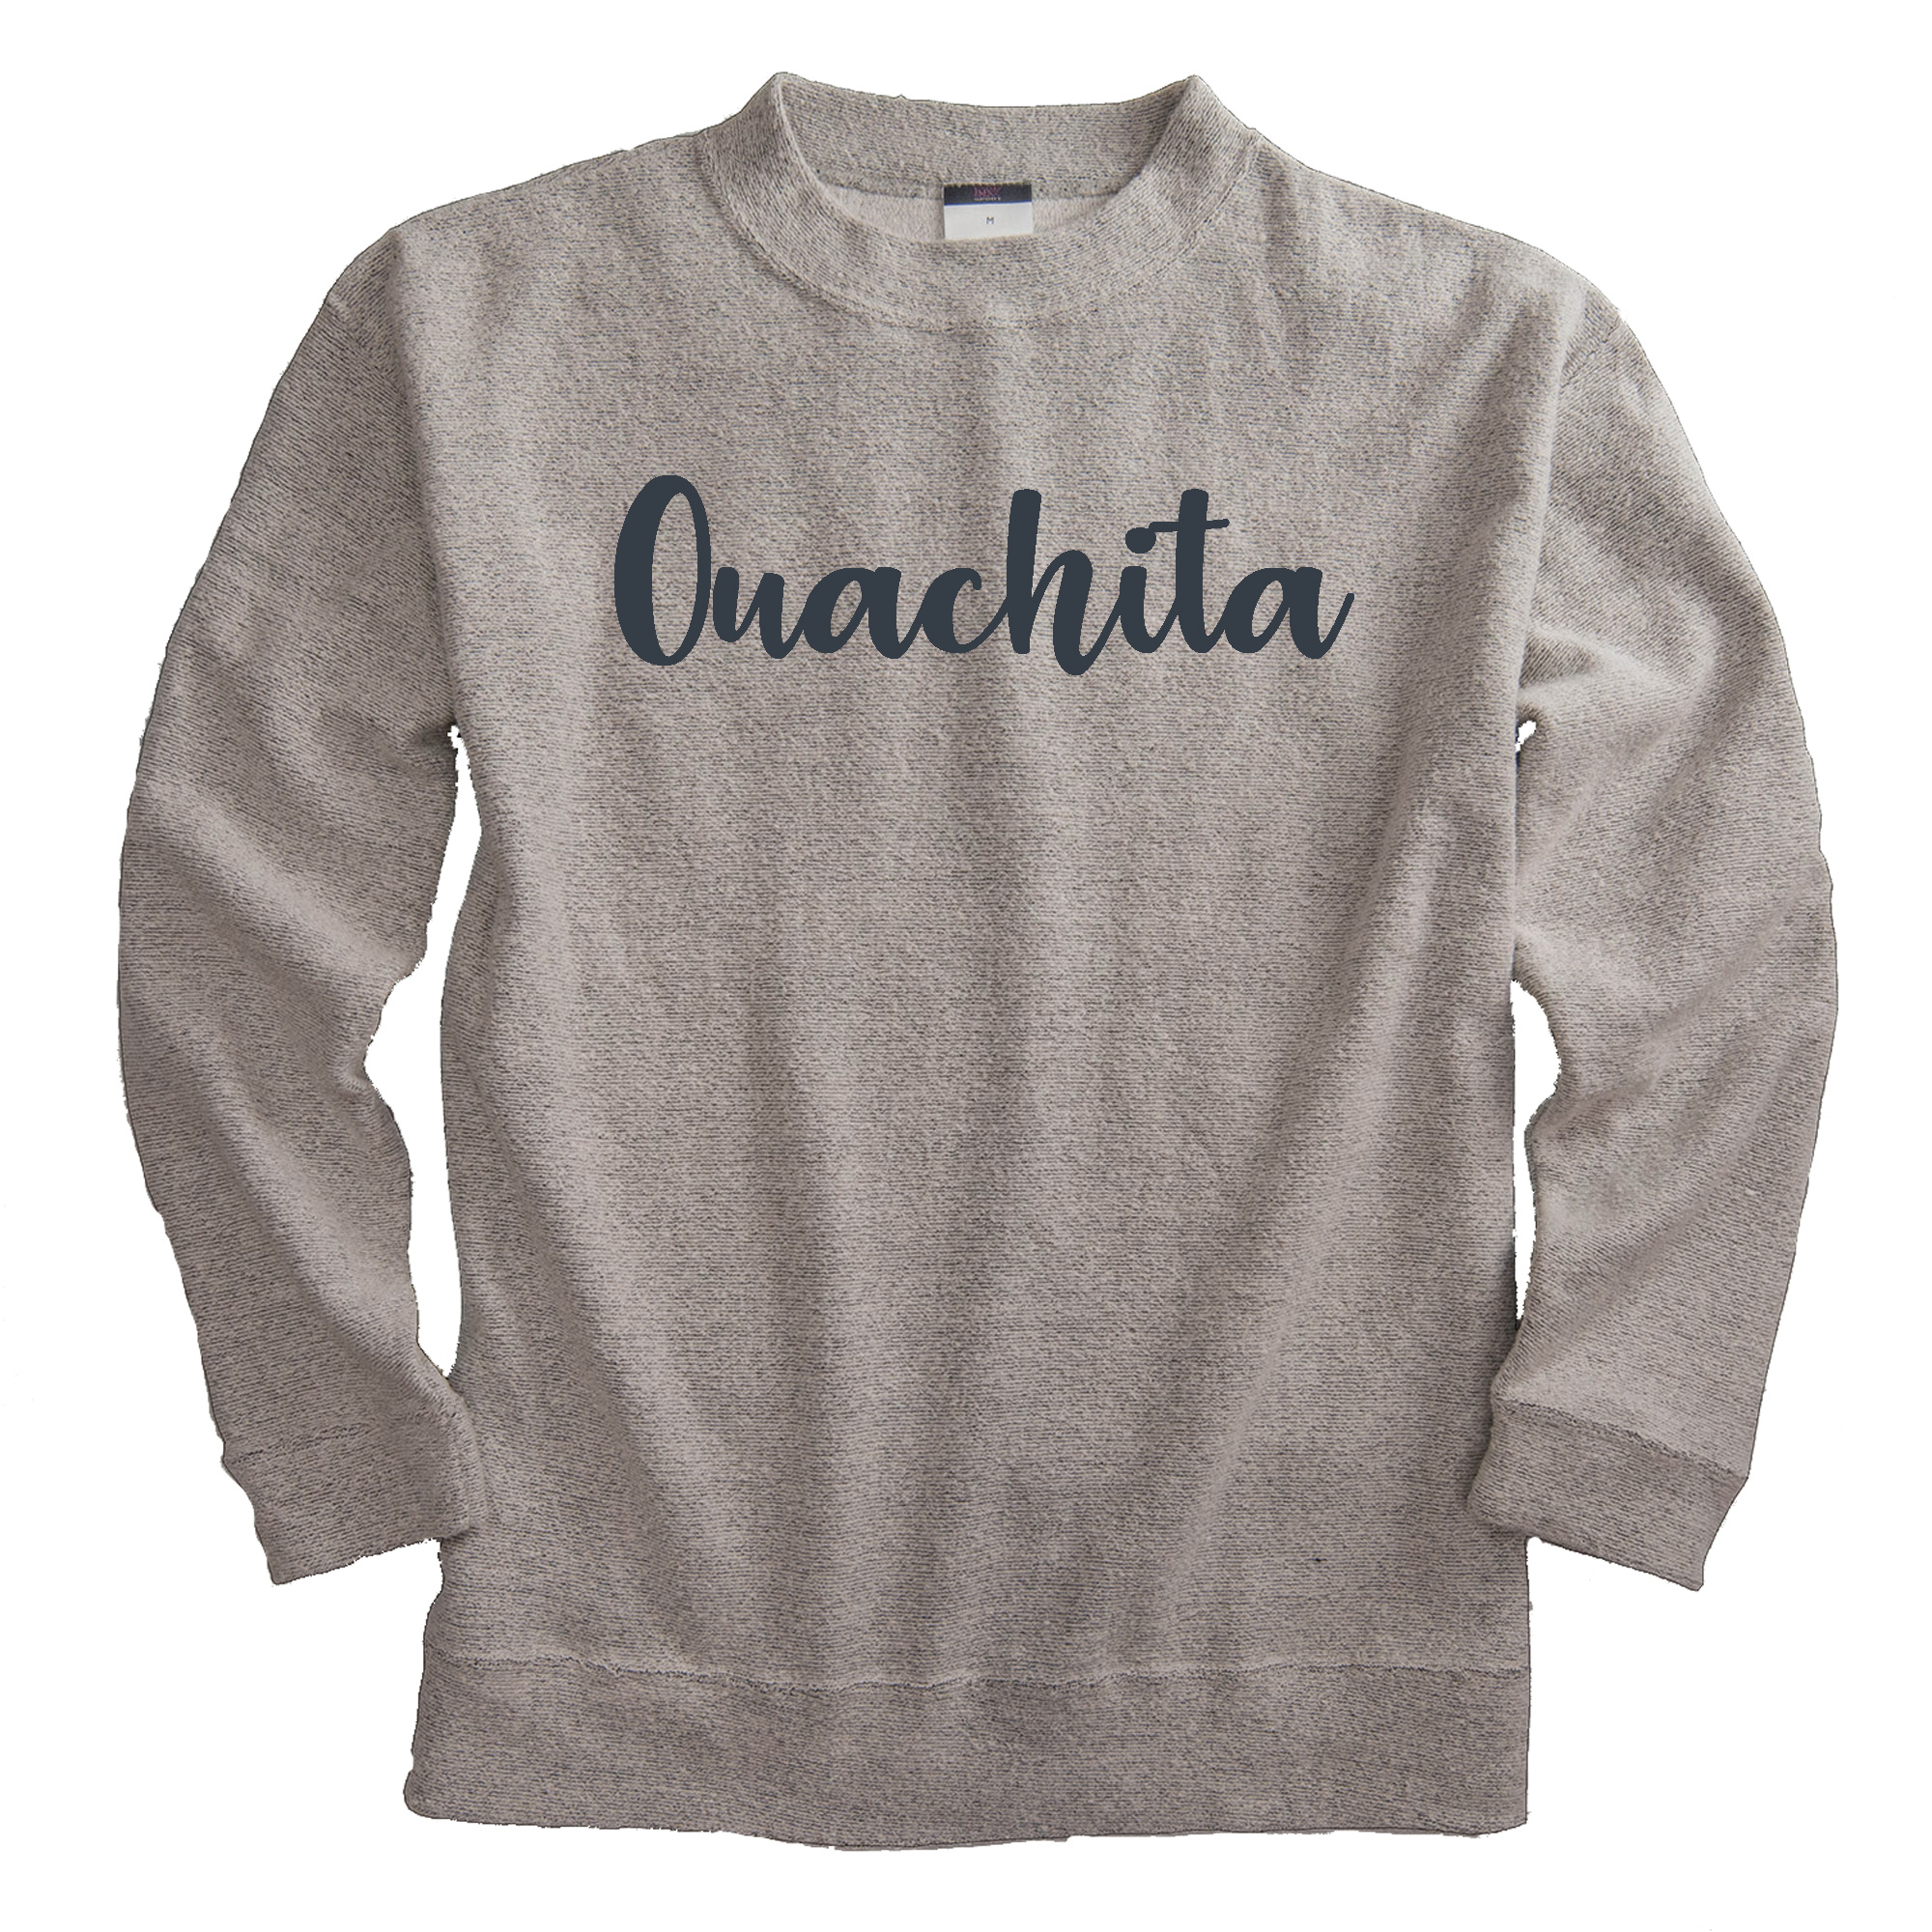 OUACHITA LYLA LOOP SWEATSHIRT